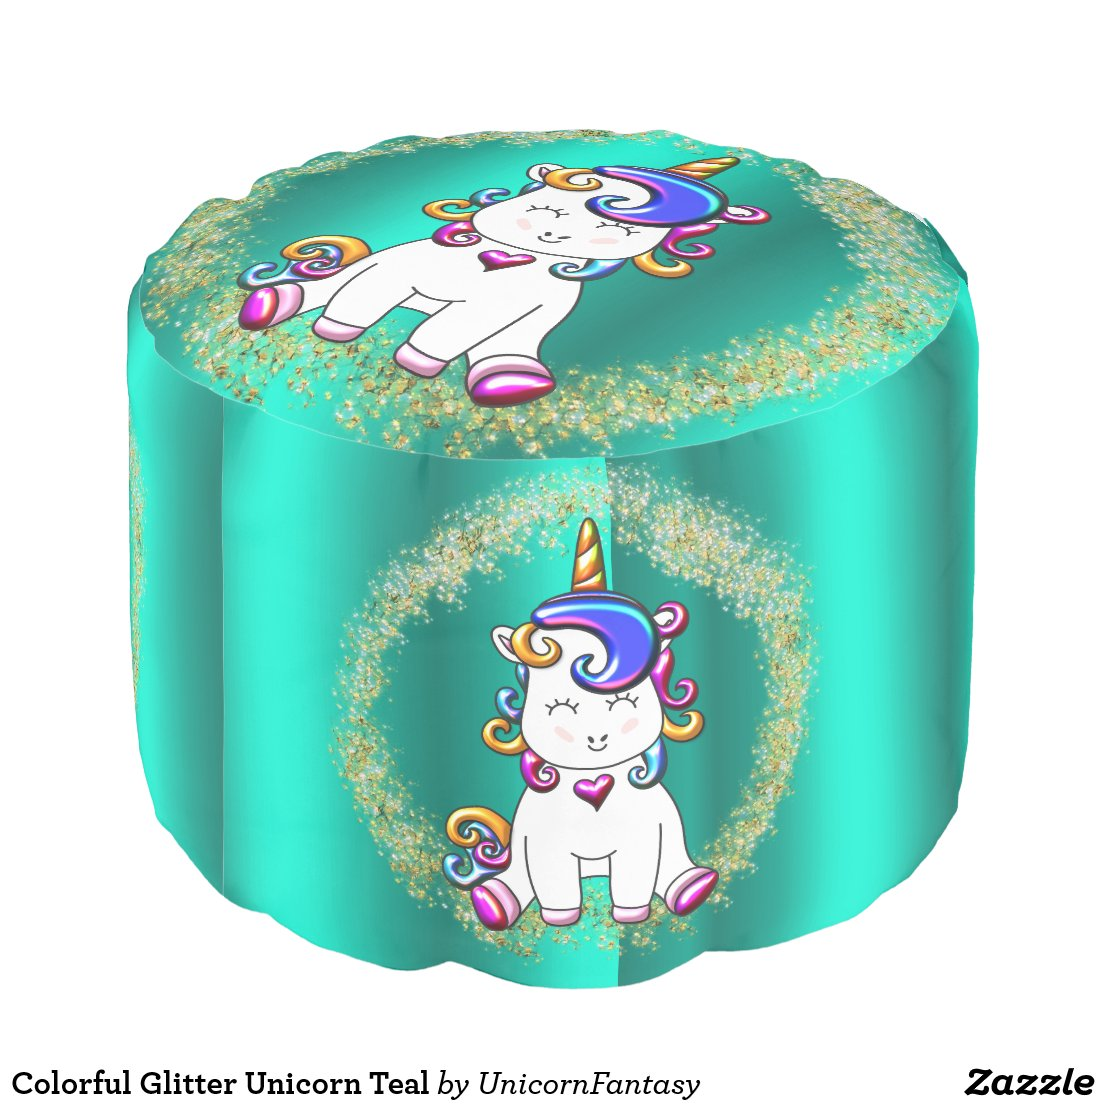 Colorful Glitter Unicorn Teal Pouf